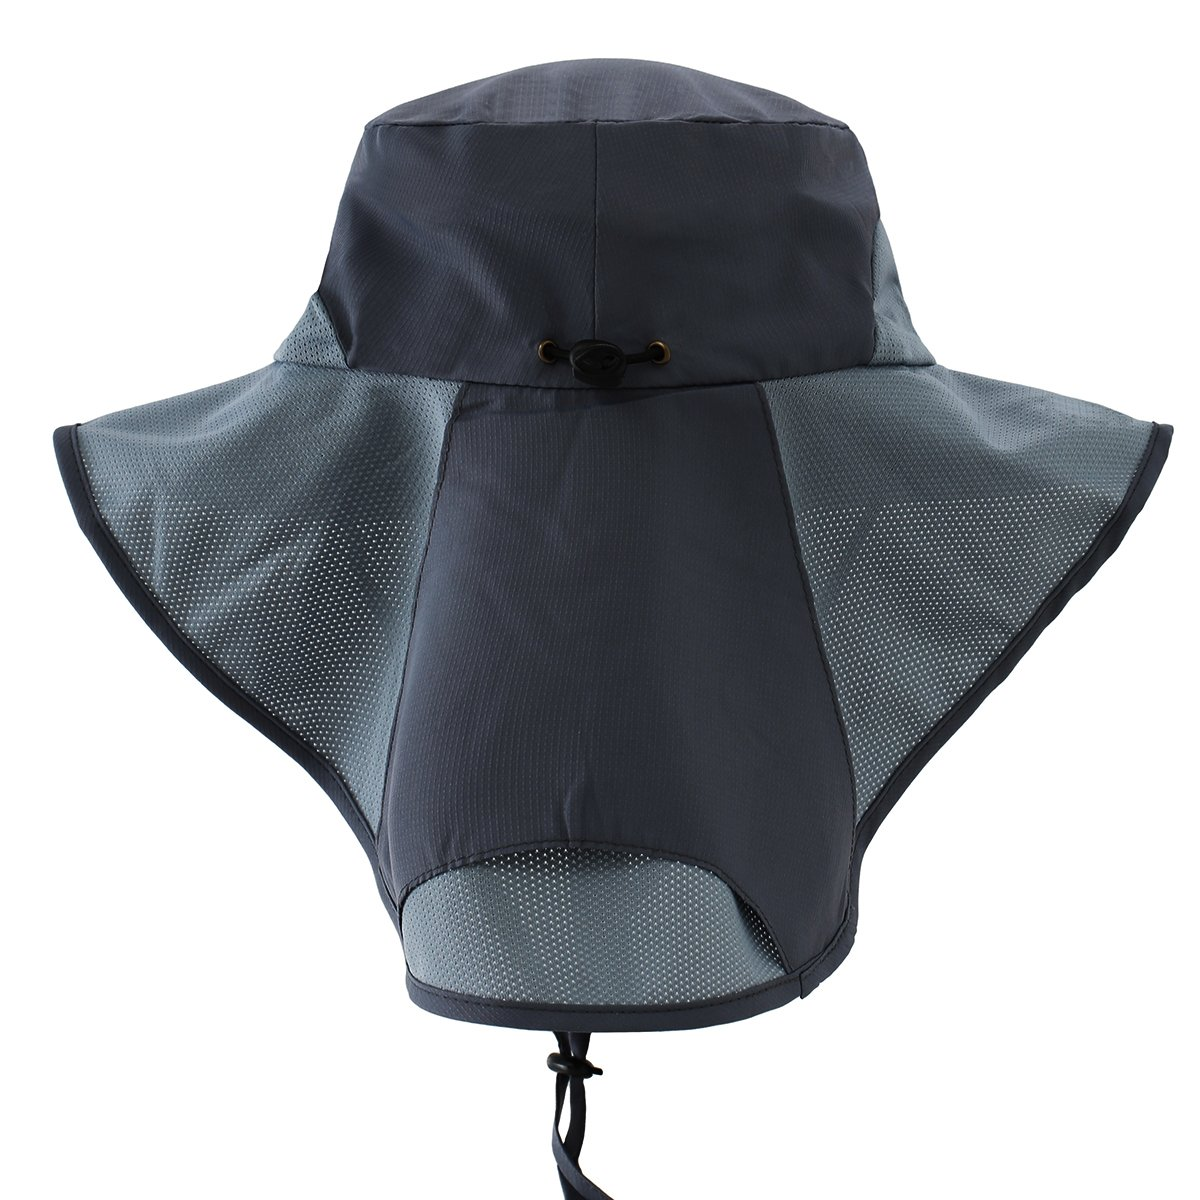 cc3a27ff152 Ksenia Unisex Wide Brim Outdoor Activities UV Protecting Fishing Cap Sun  Hats with Neck Flap